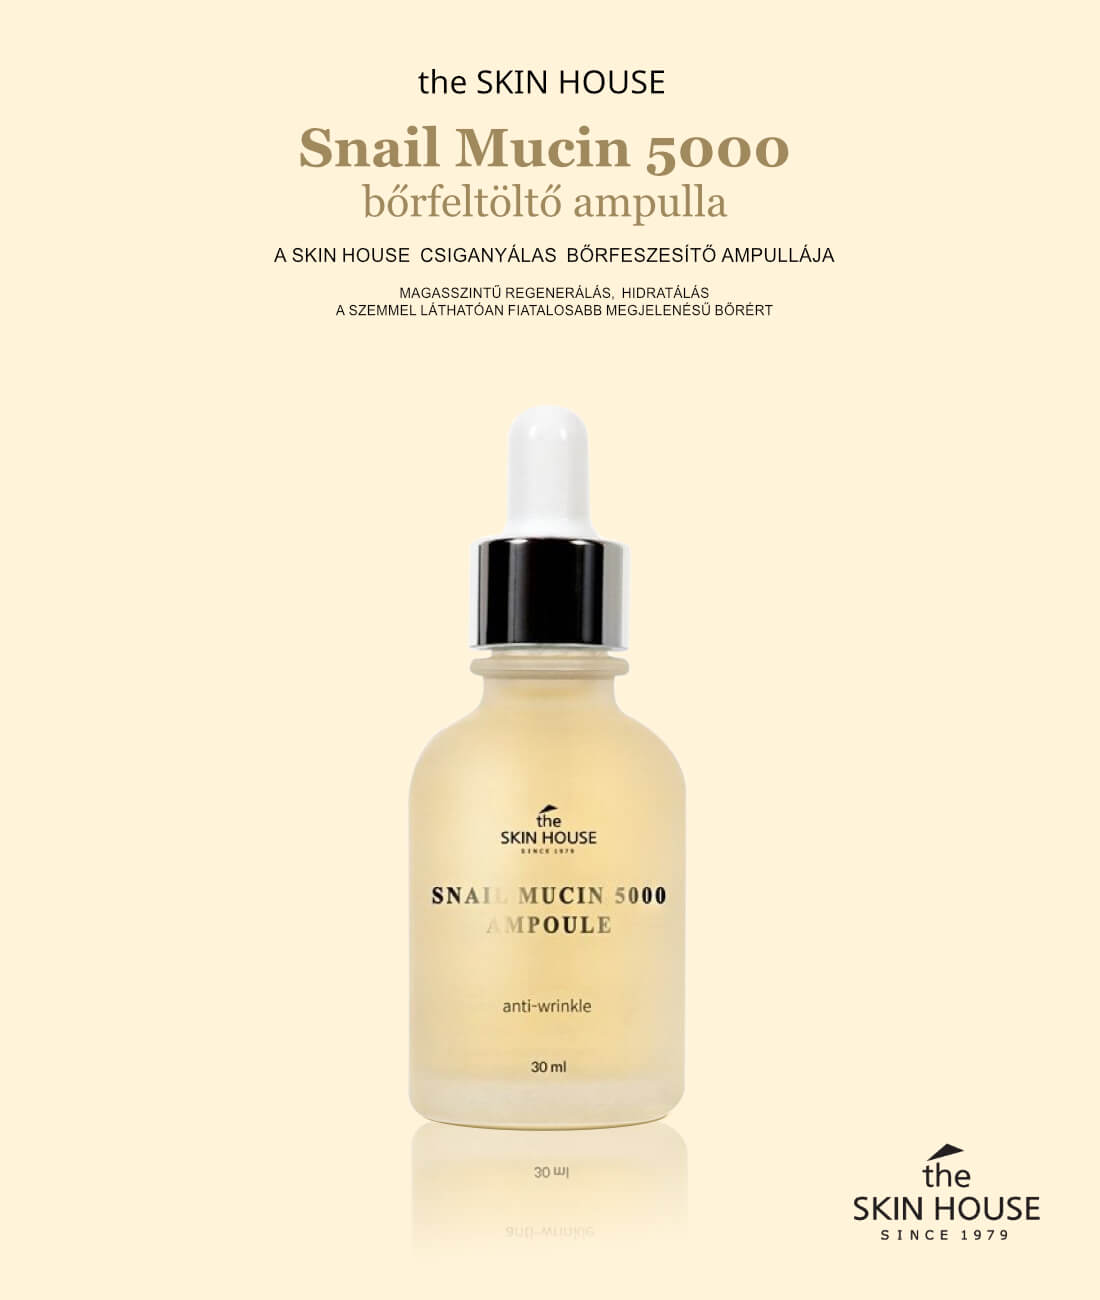 the-skin-house-snail-mucin-5000-ampulla